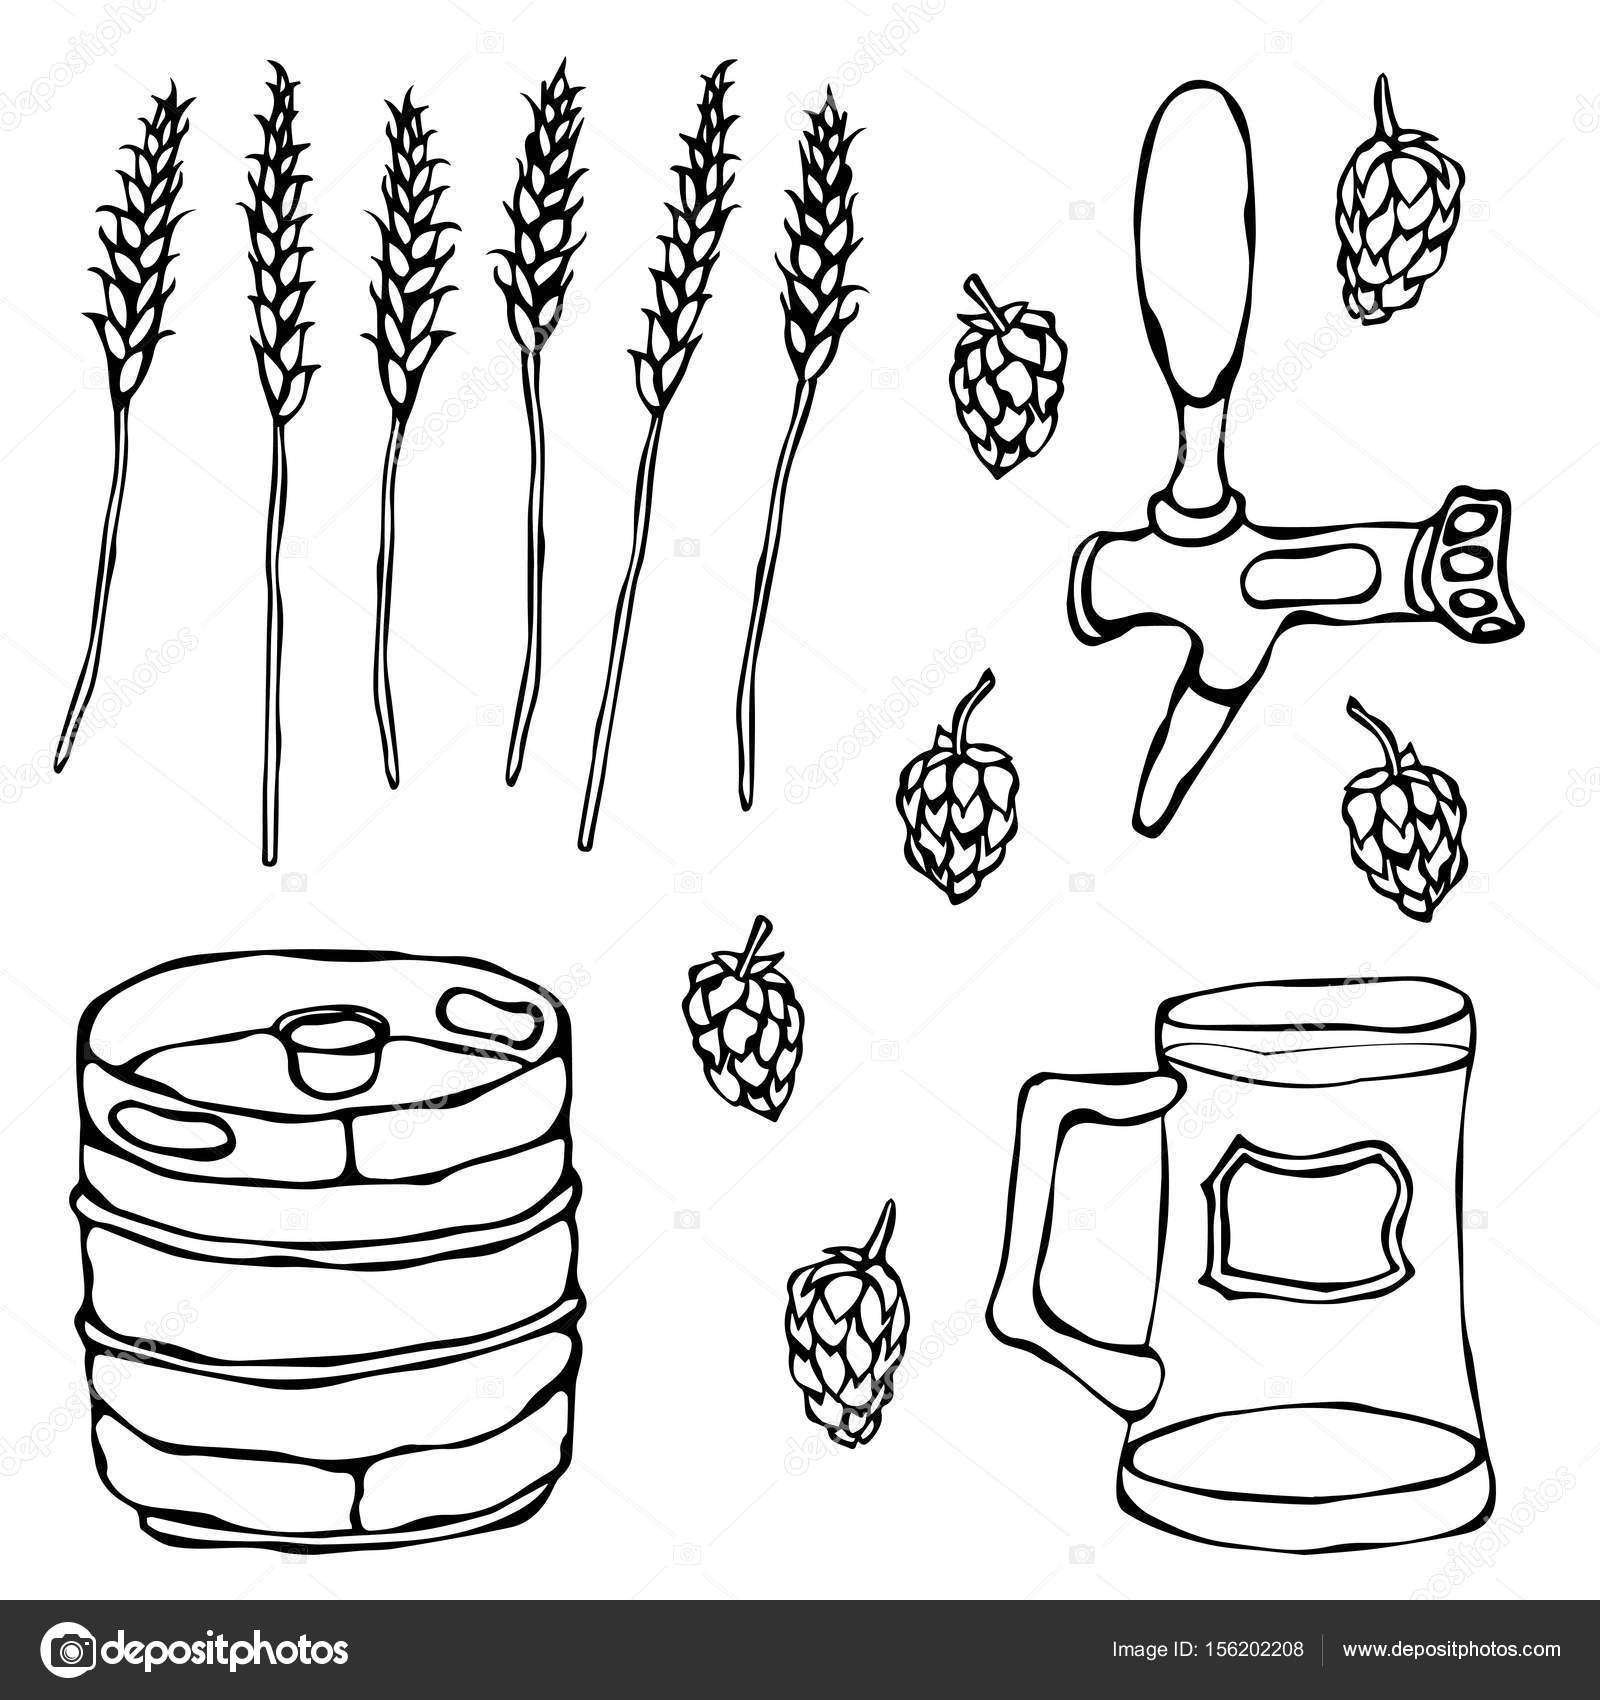 1600x1700 Set Of Beer Objects Hop, Malt, Mug, Tap, Keg. Isolated On A White